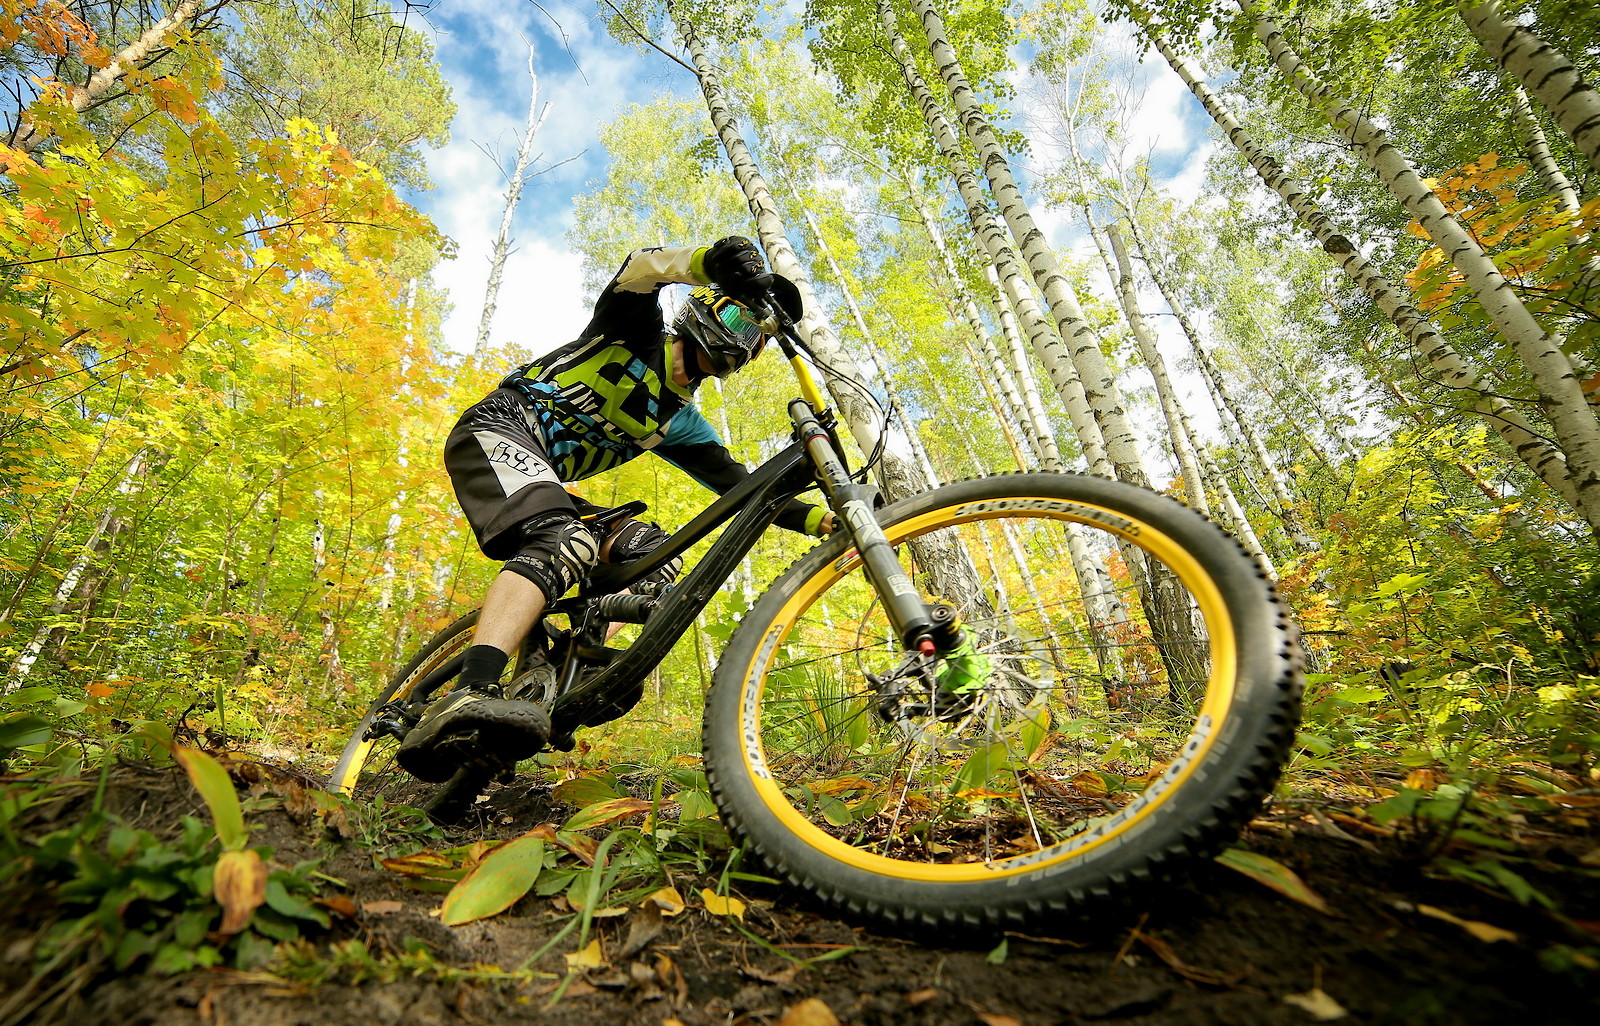 last day of autumn - YakuT - Mountain Biking Pictures - Vital MTB